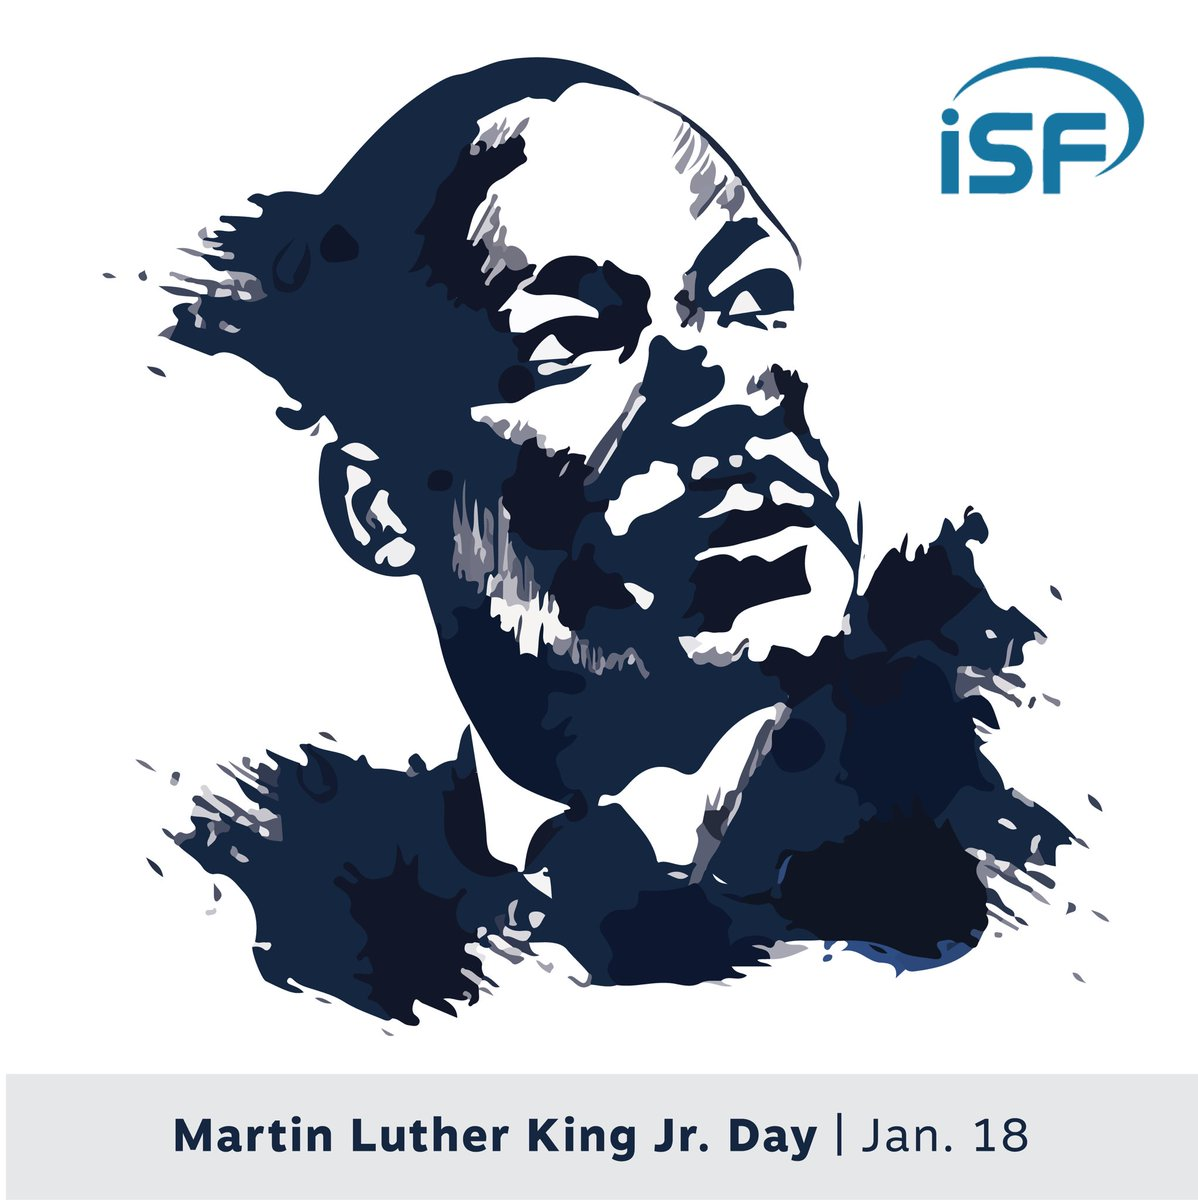 We take time to honor the life of Dr. Martin Luther King, Jr. His commitment to justice and equality continues to inspire today and every day. #MLKDay